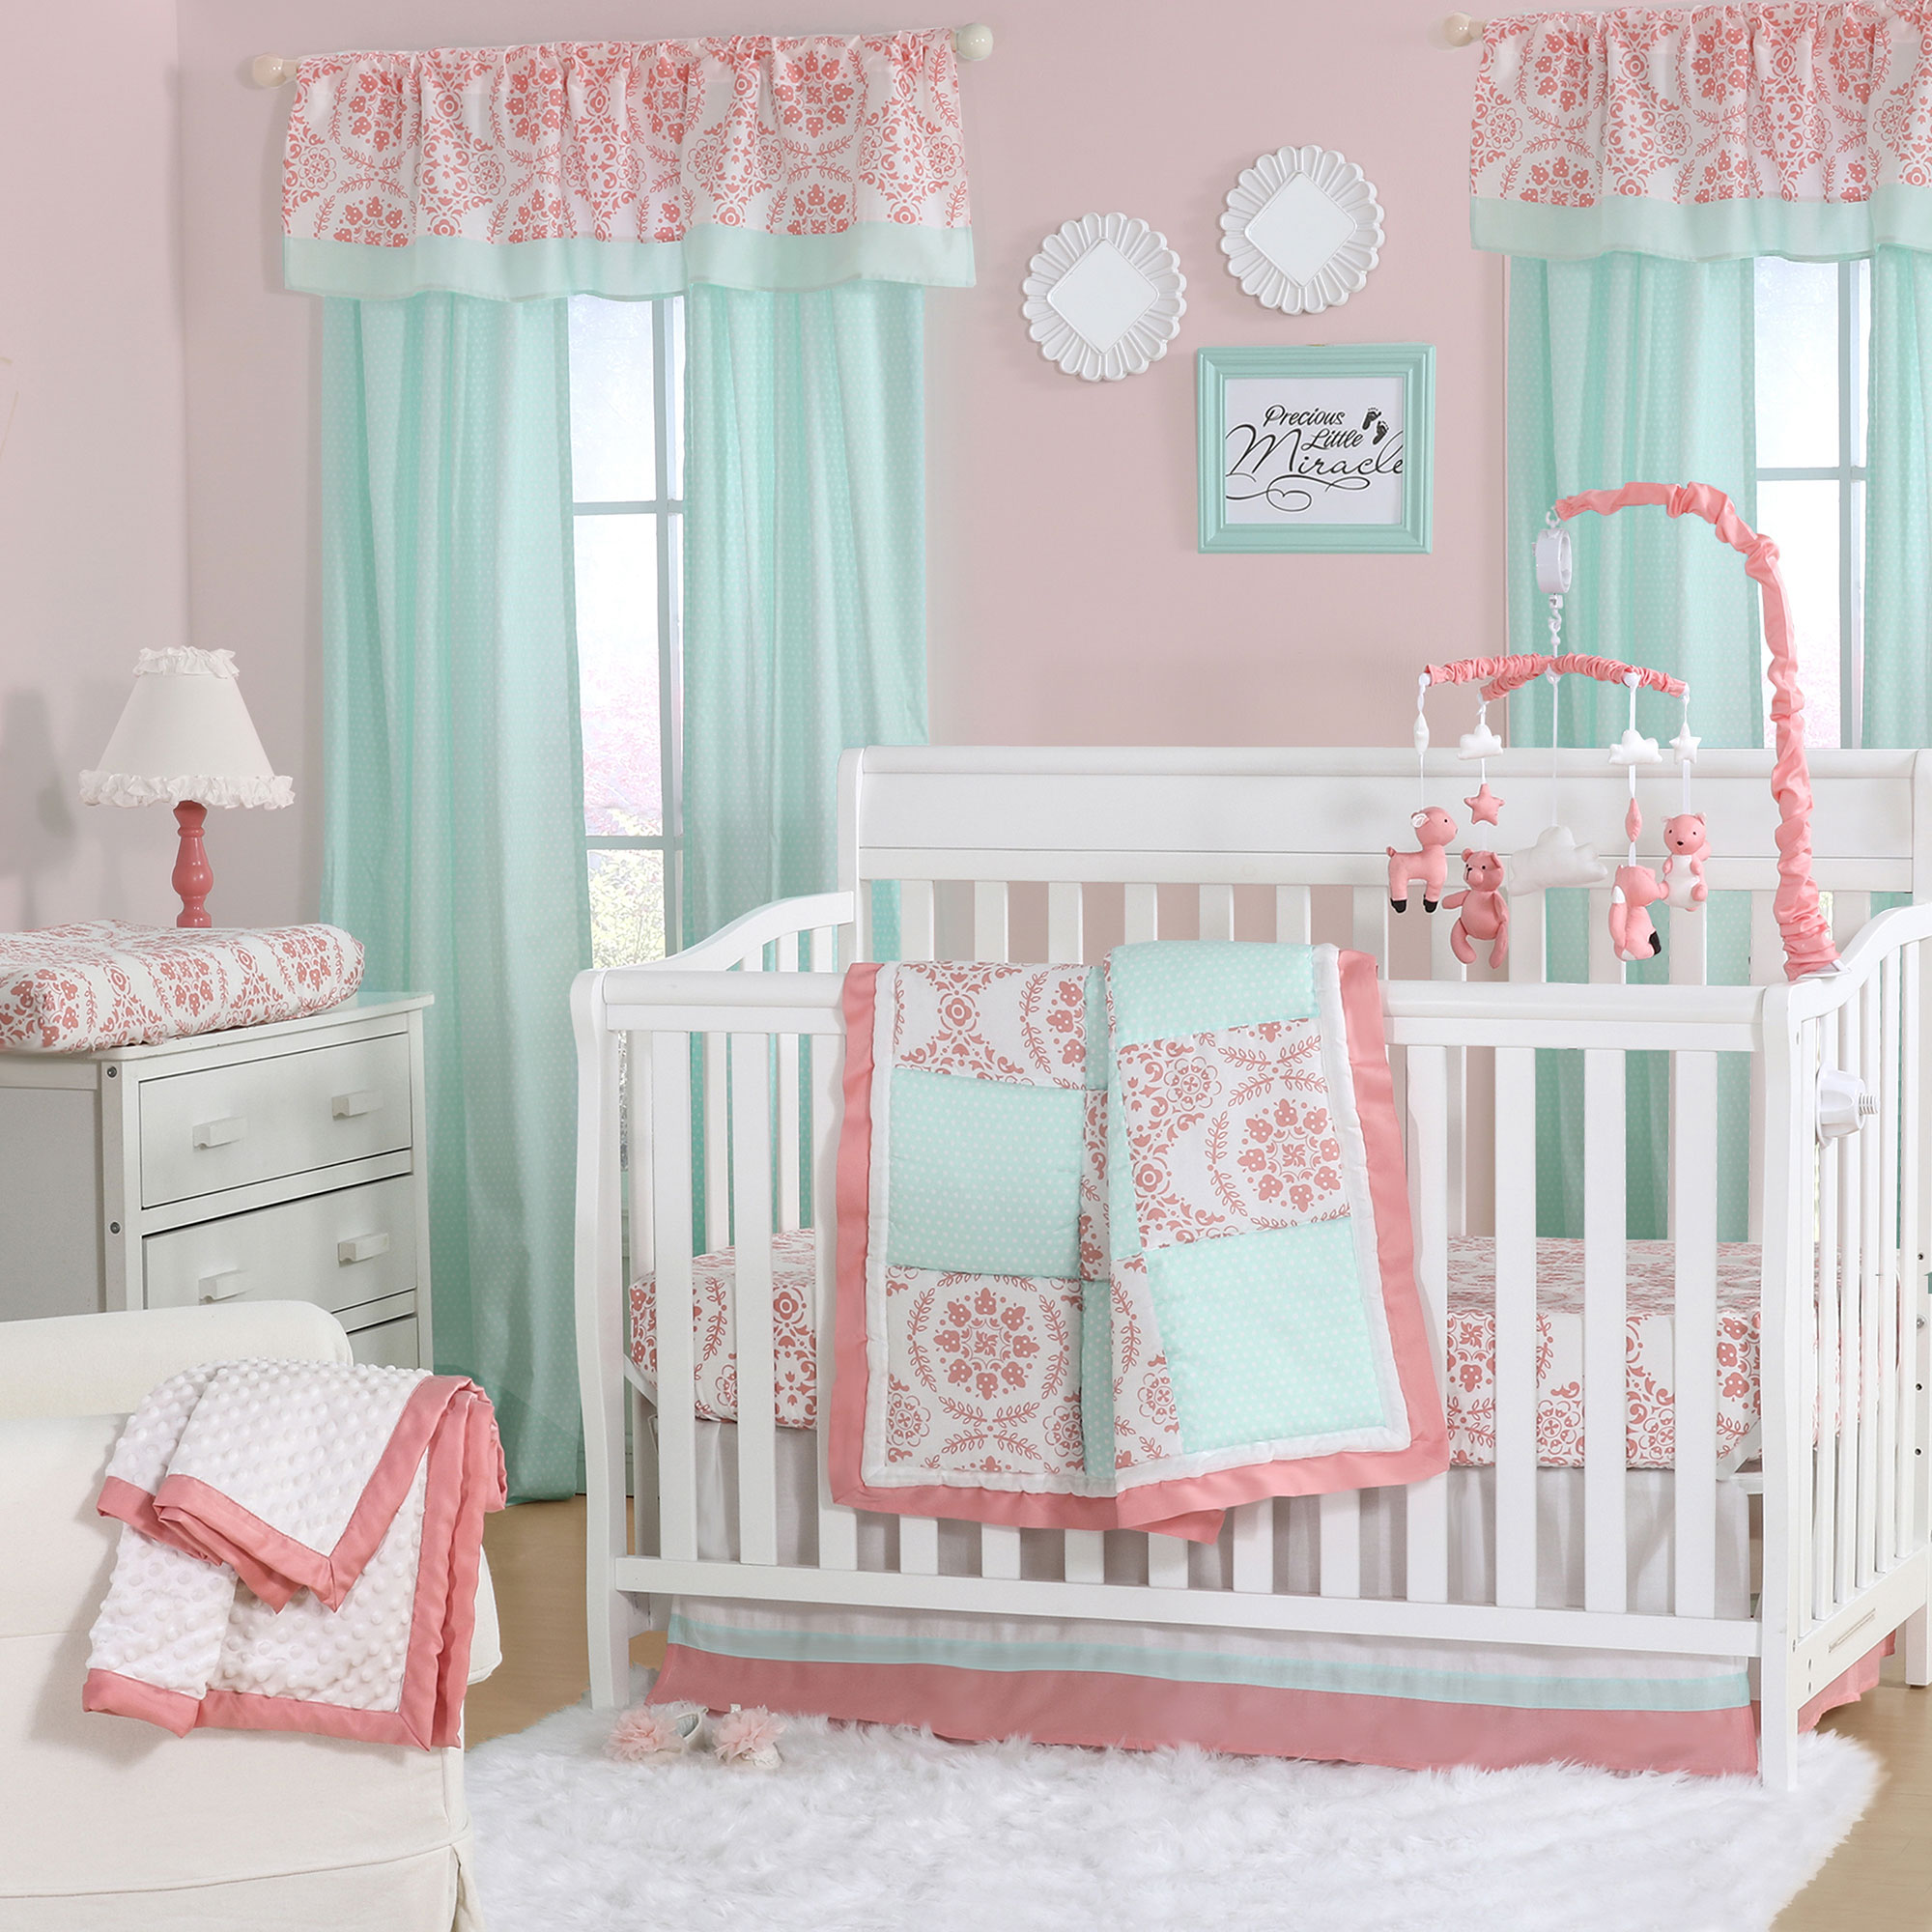 Details about Mint Green and Coral Patchwork 3 Piece Baby Crib Bedding Set  by The Peanut Shell